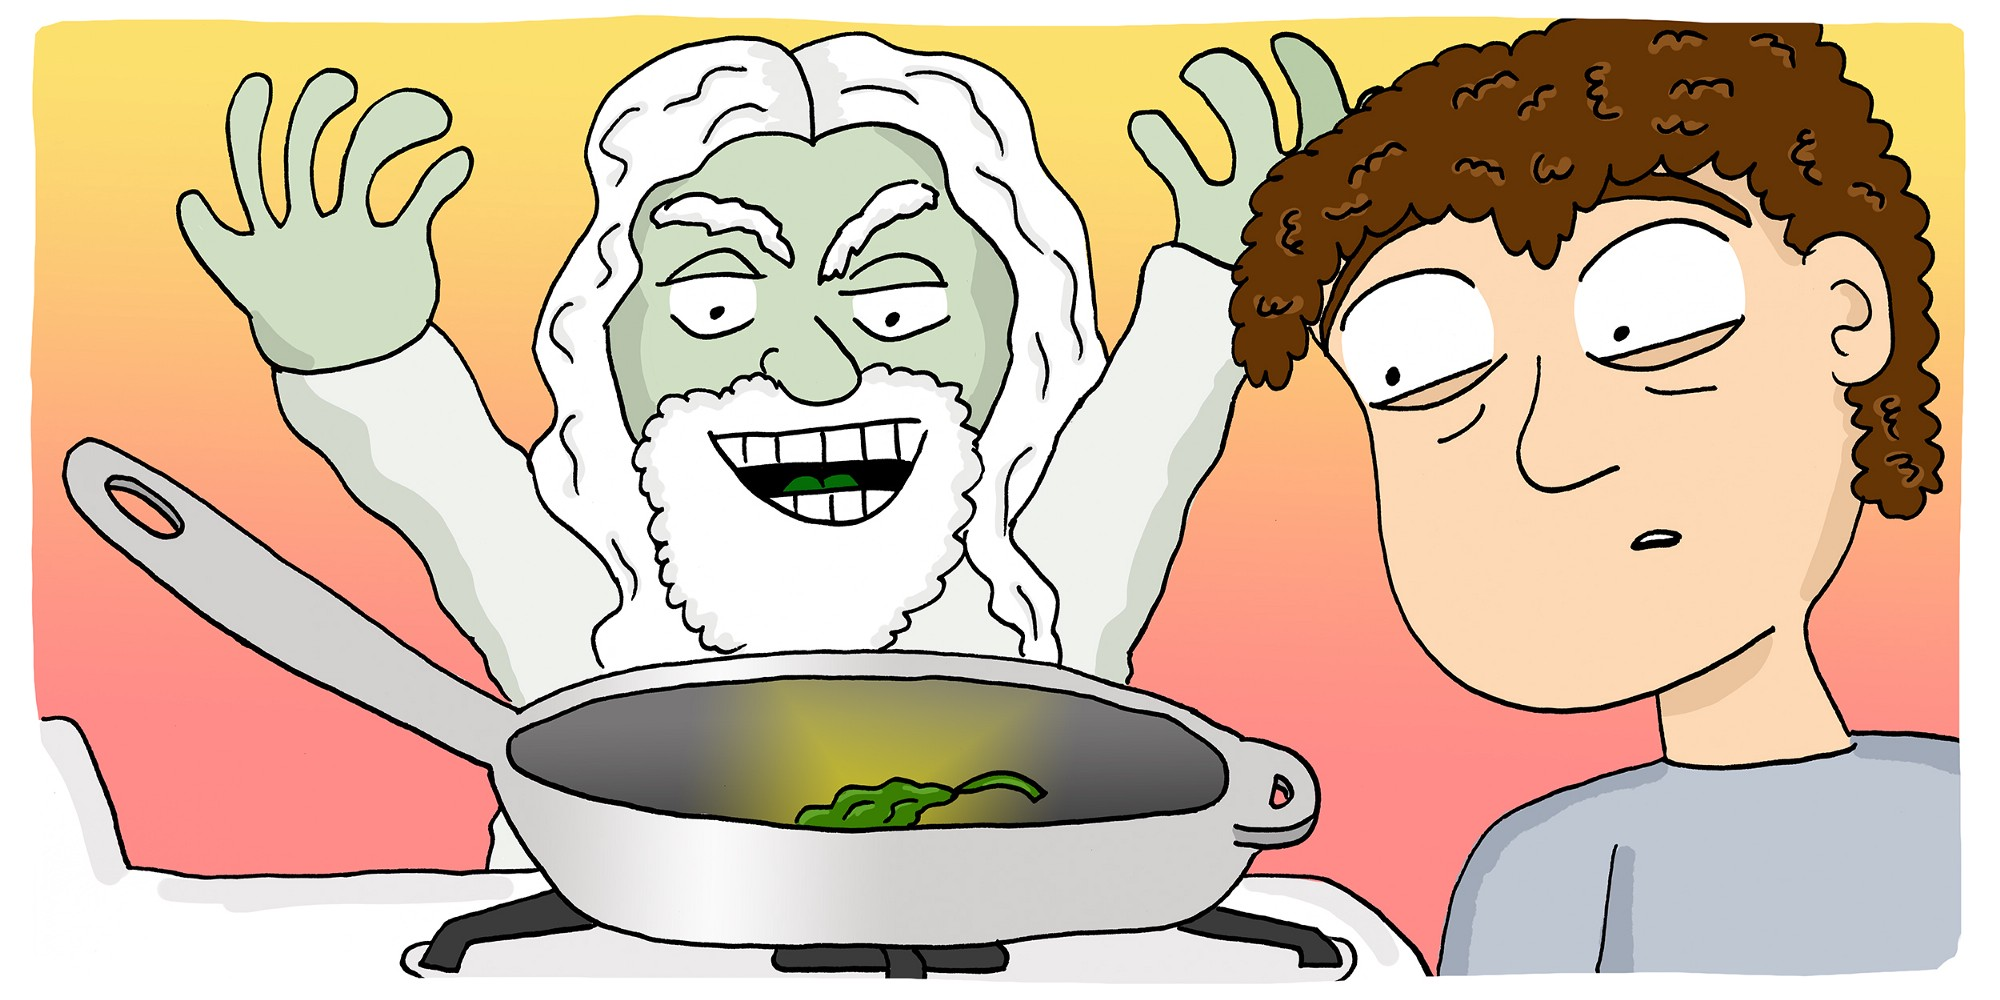 man looks at piece of spinach in a pan as a god looks on smiling